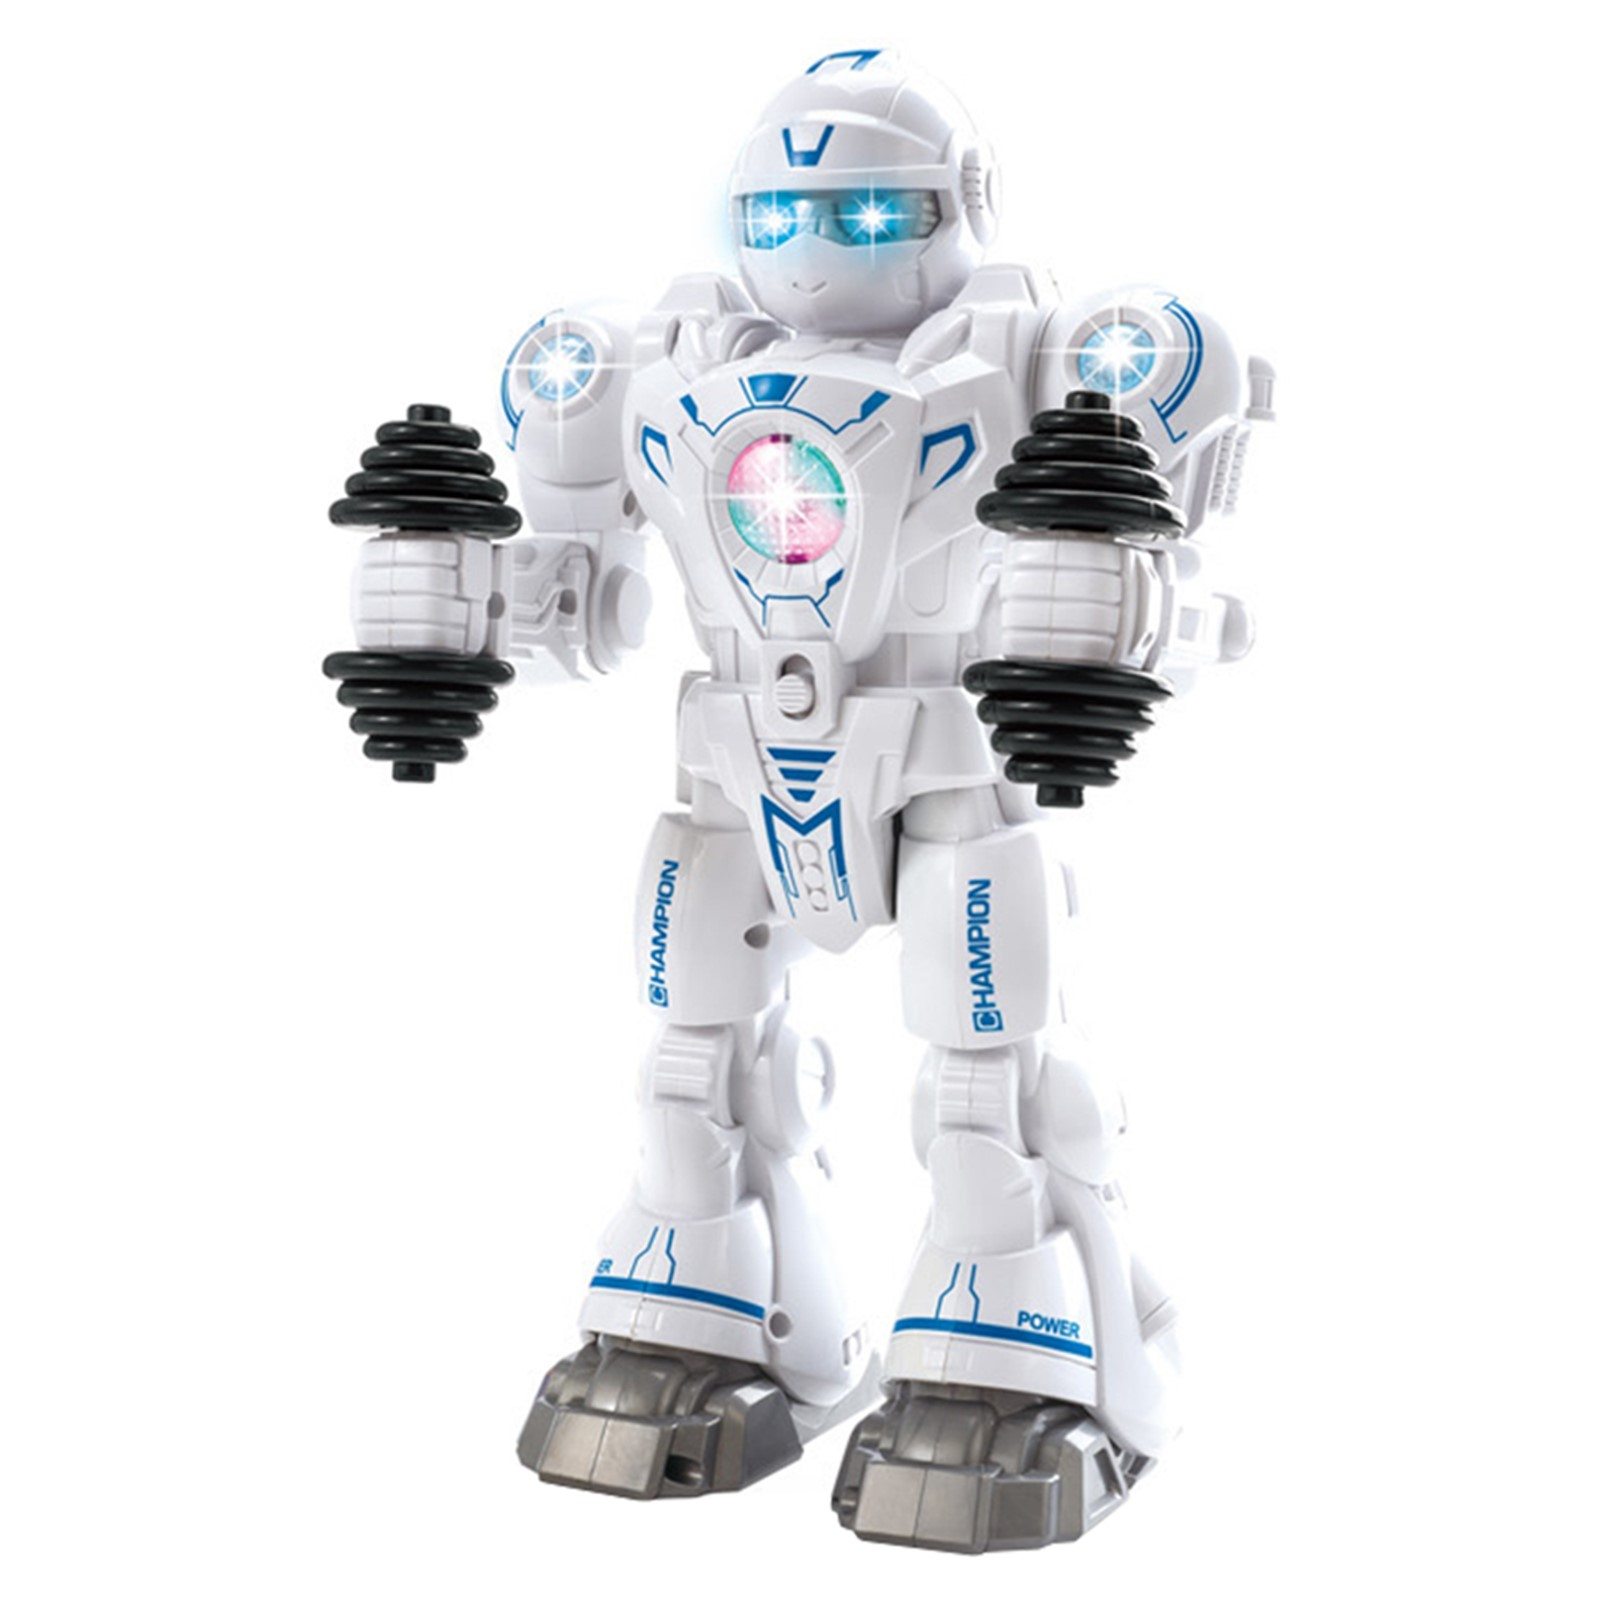 Athlete Exercise Push-Up Robot With Workout Dumbbells Lights And Music Walking Dancing Toy Interactive Kids Smart Android Robotic Cop Perfect Funny Action Toy For Boys Girls Toddlers Battery Operated White Bump And Go